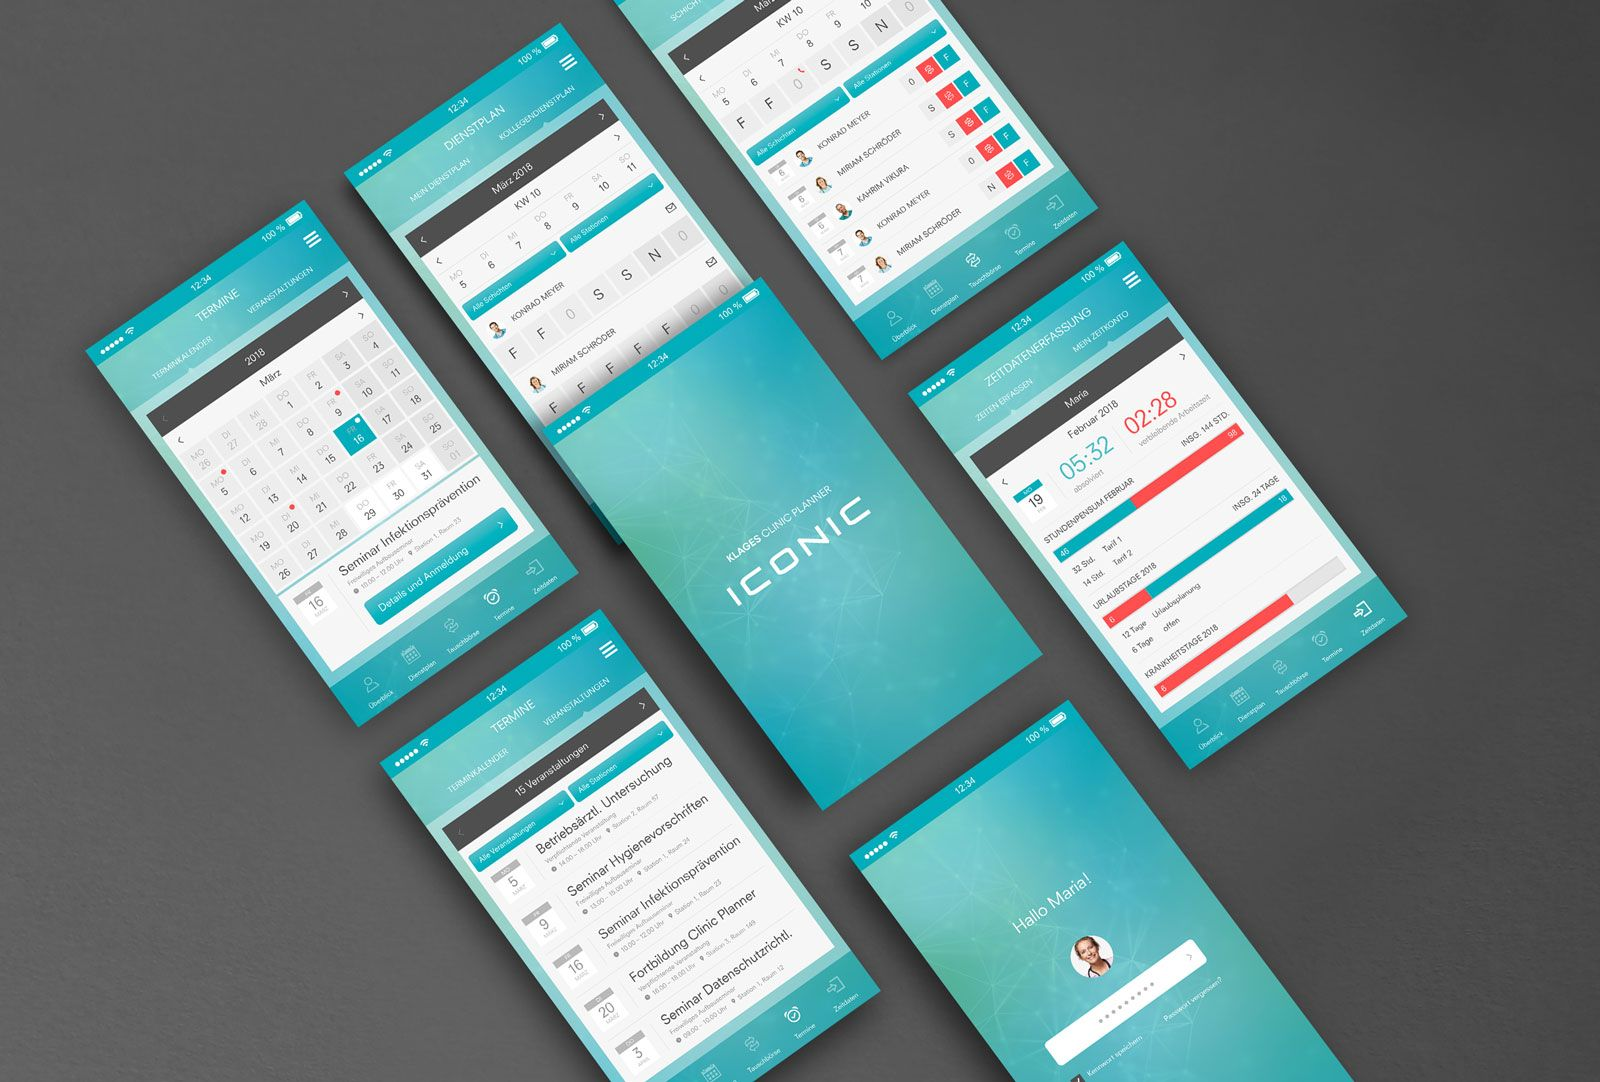 KLAGES & Partner - Clinic Planner App